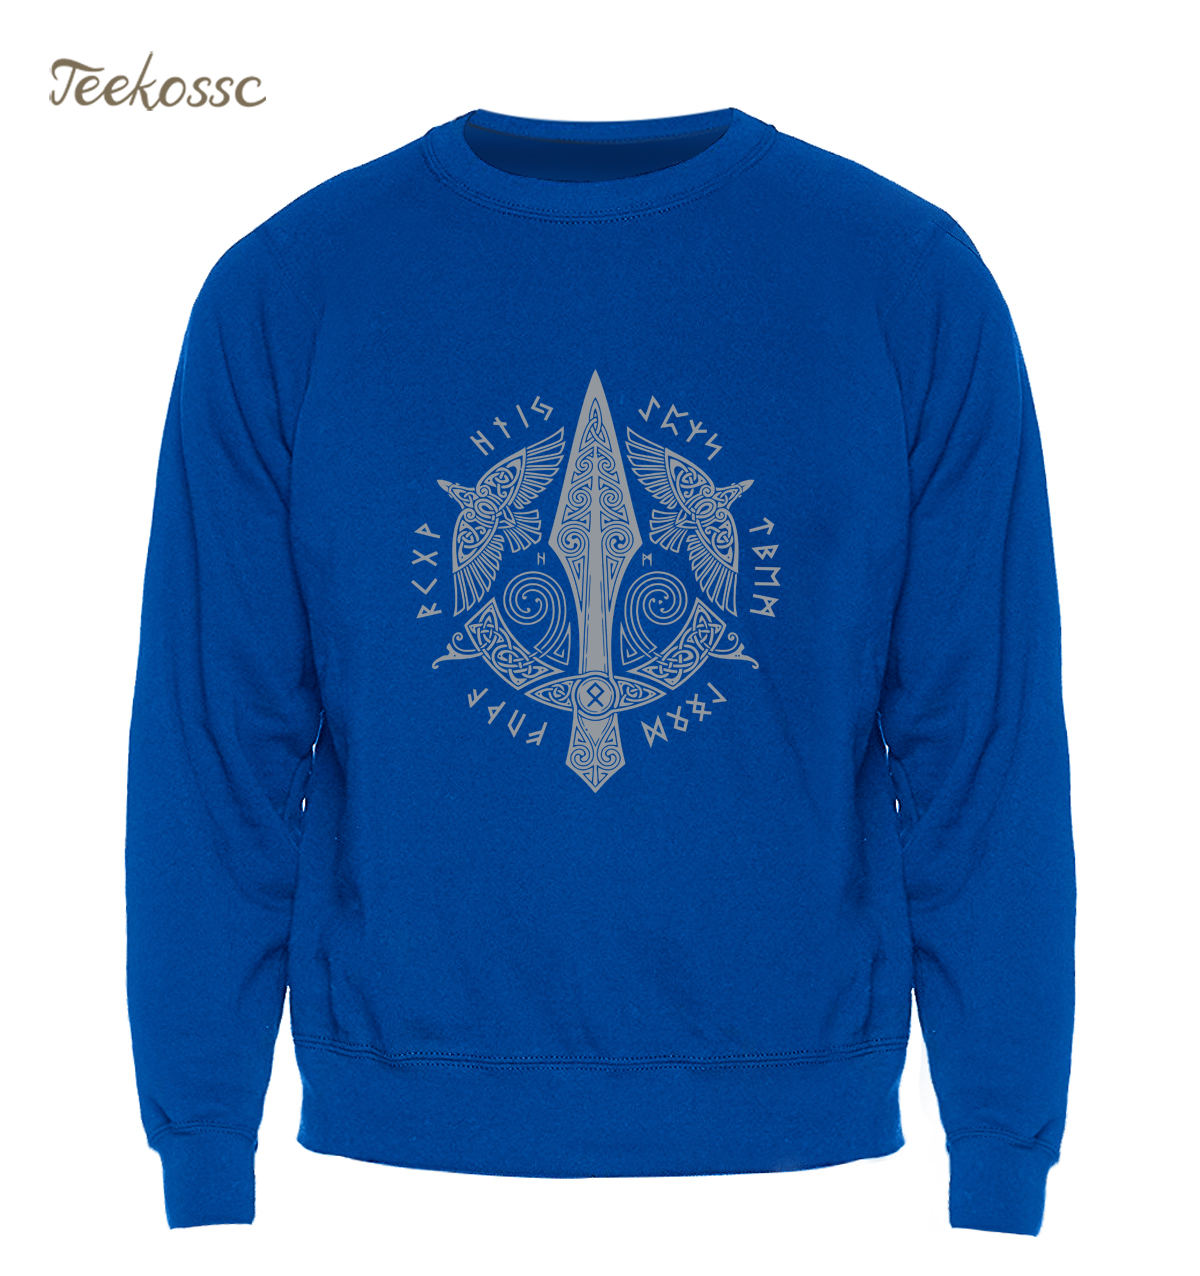 Odin Vikings Sweatshirt Men Viking Berserker Stylish Hoodie Cool Hip Hop Crewneck Sweatshirts Winter Autumn Blue Sportswear Mens